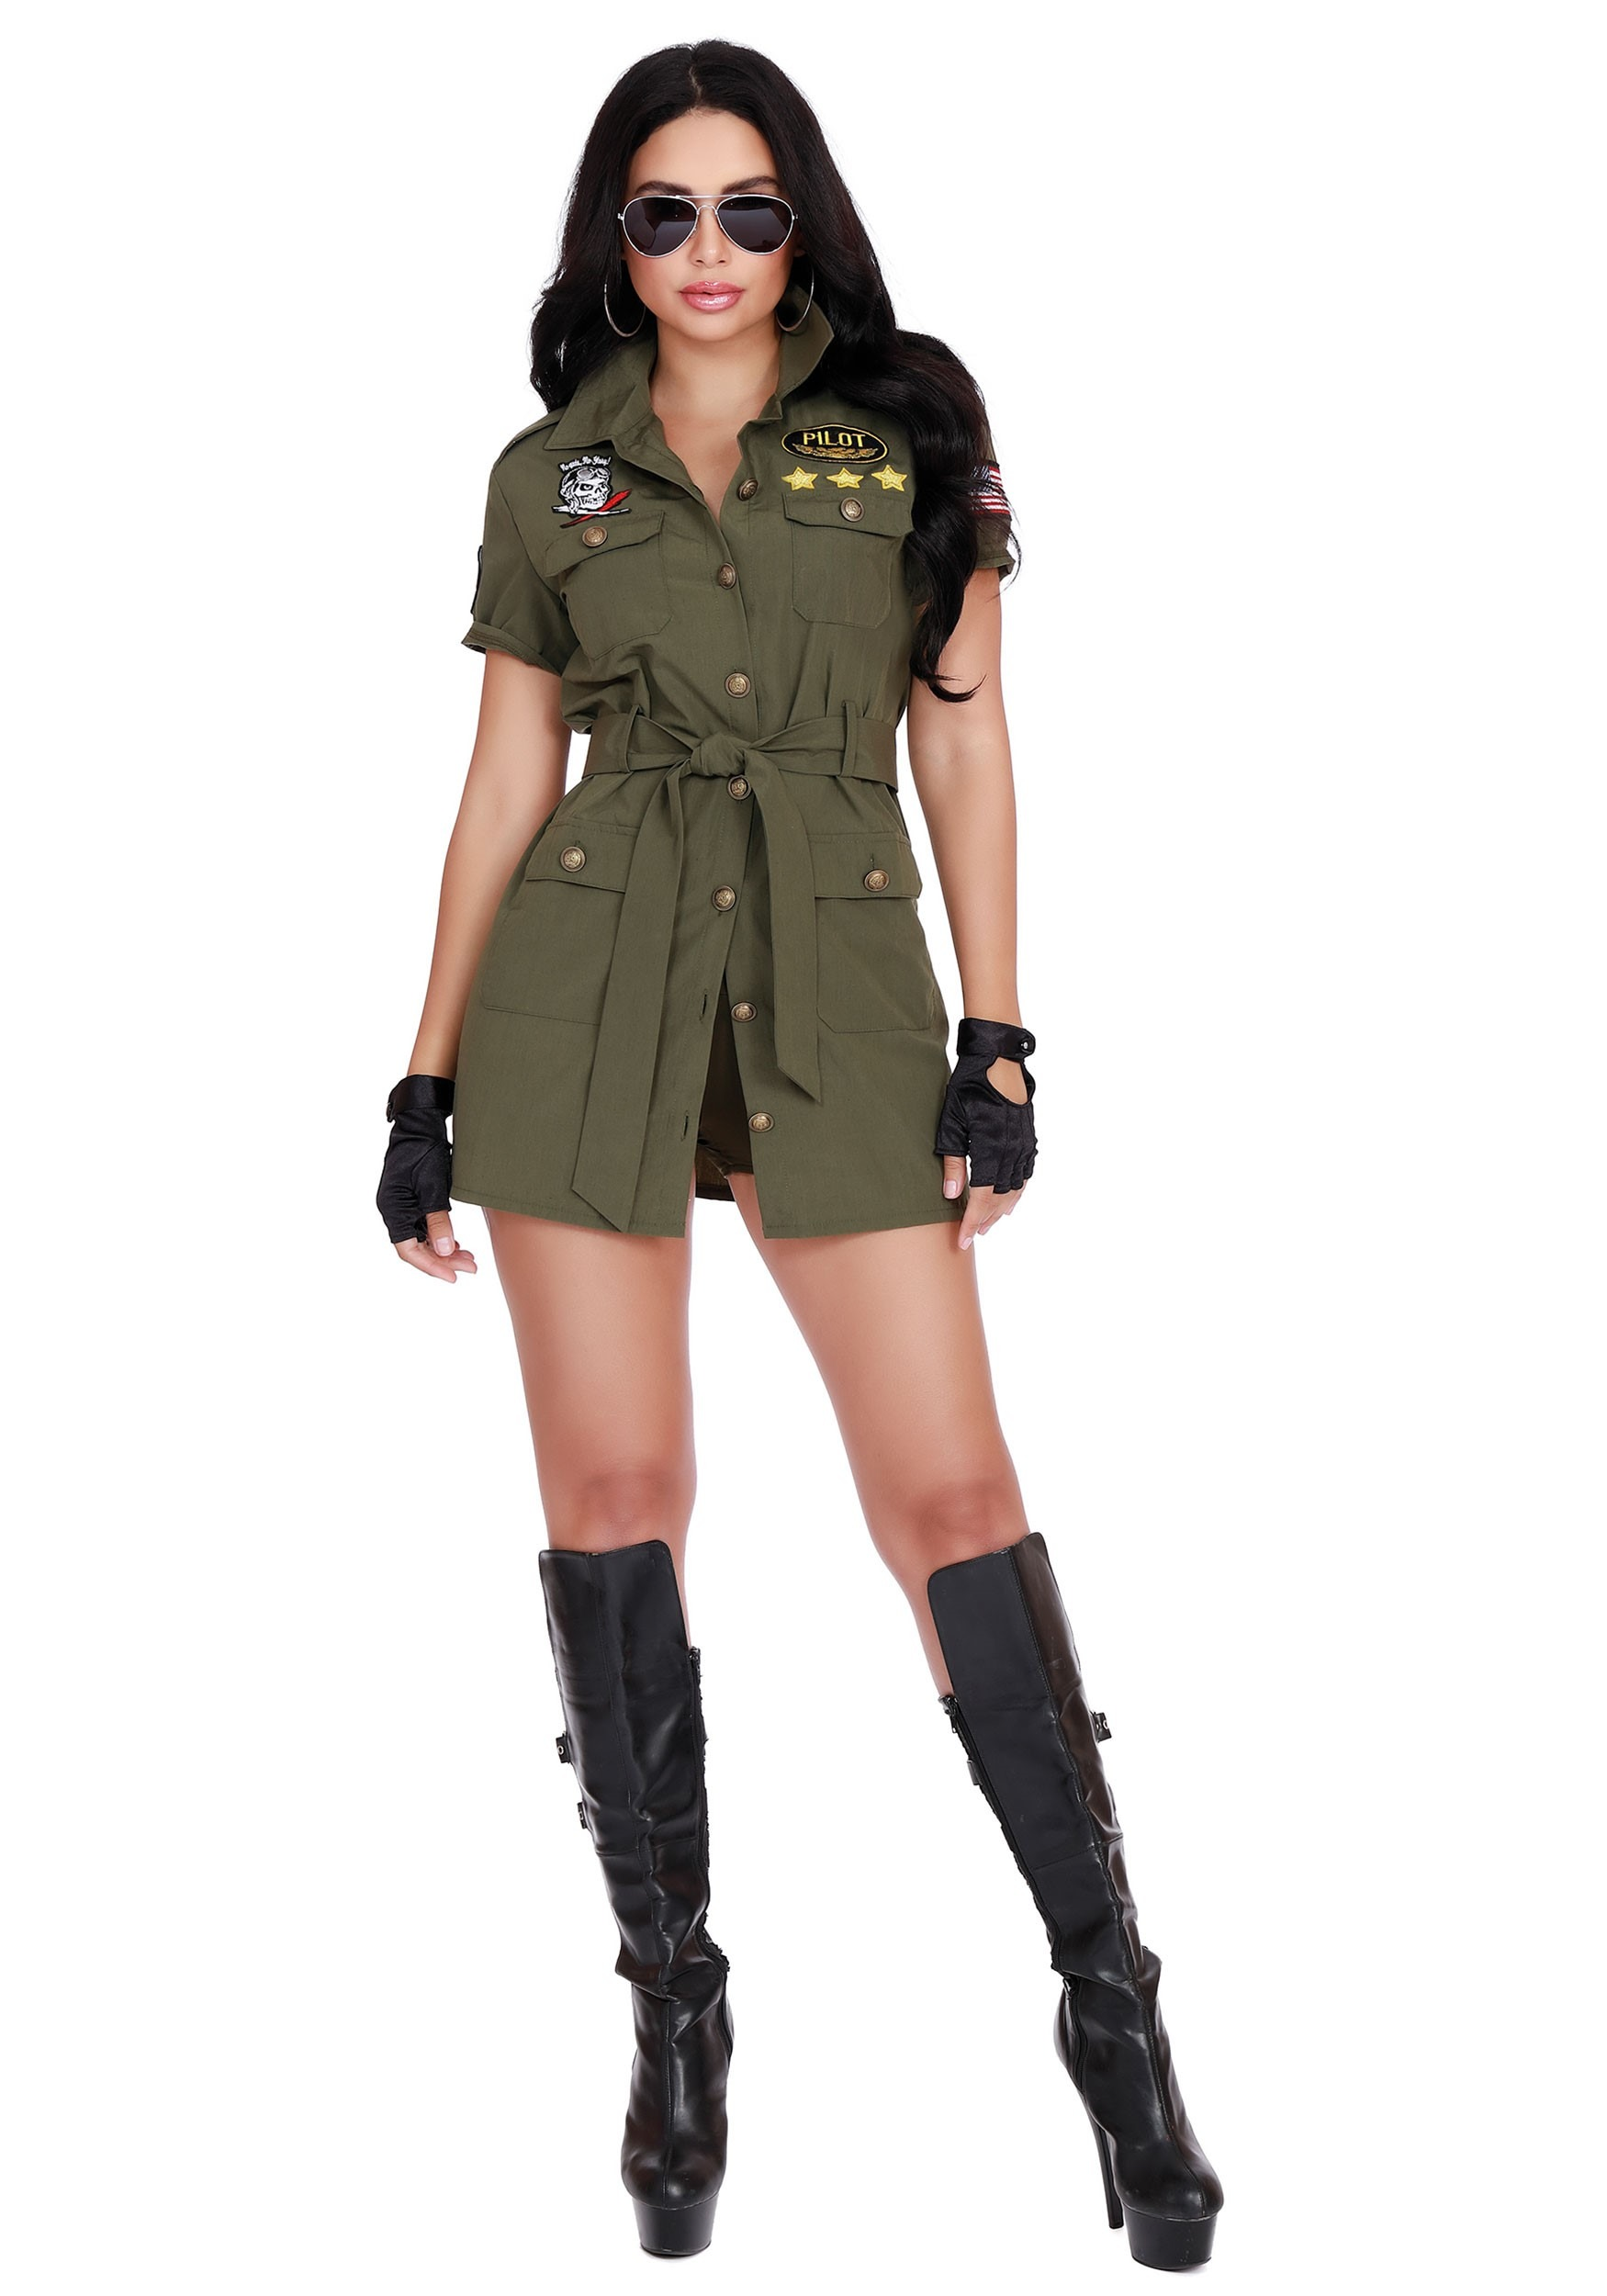 Women's Fighter Pilot Costume